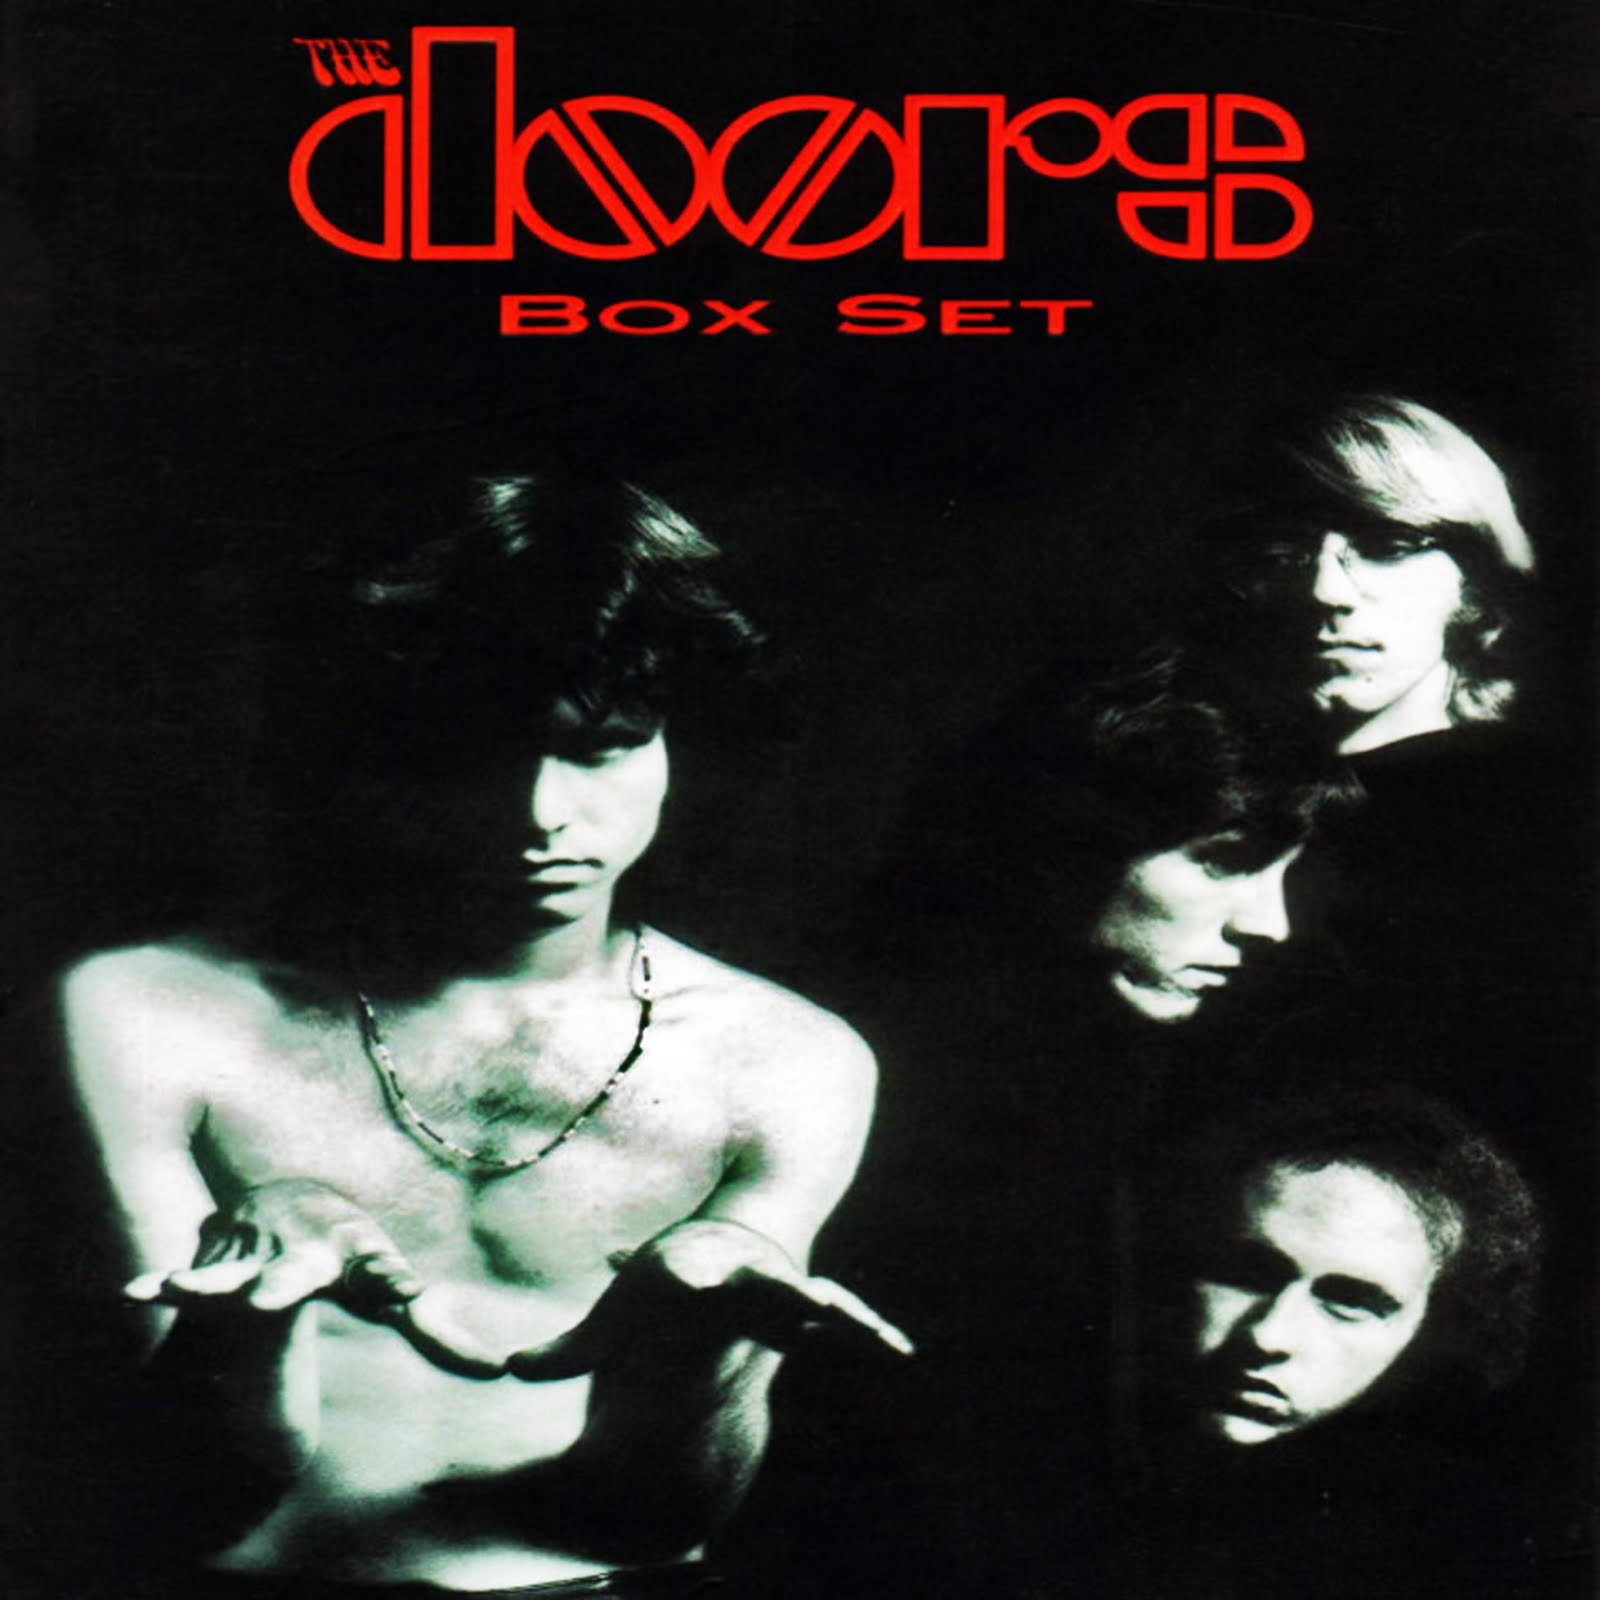 The Doors Box Set Documents The Band In All Its Unrefined